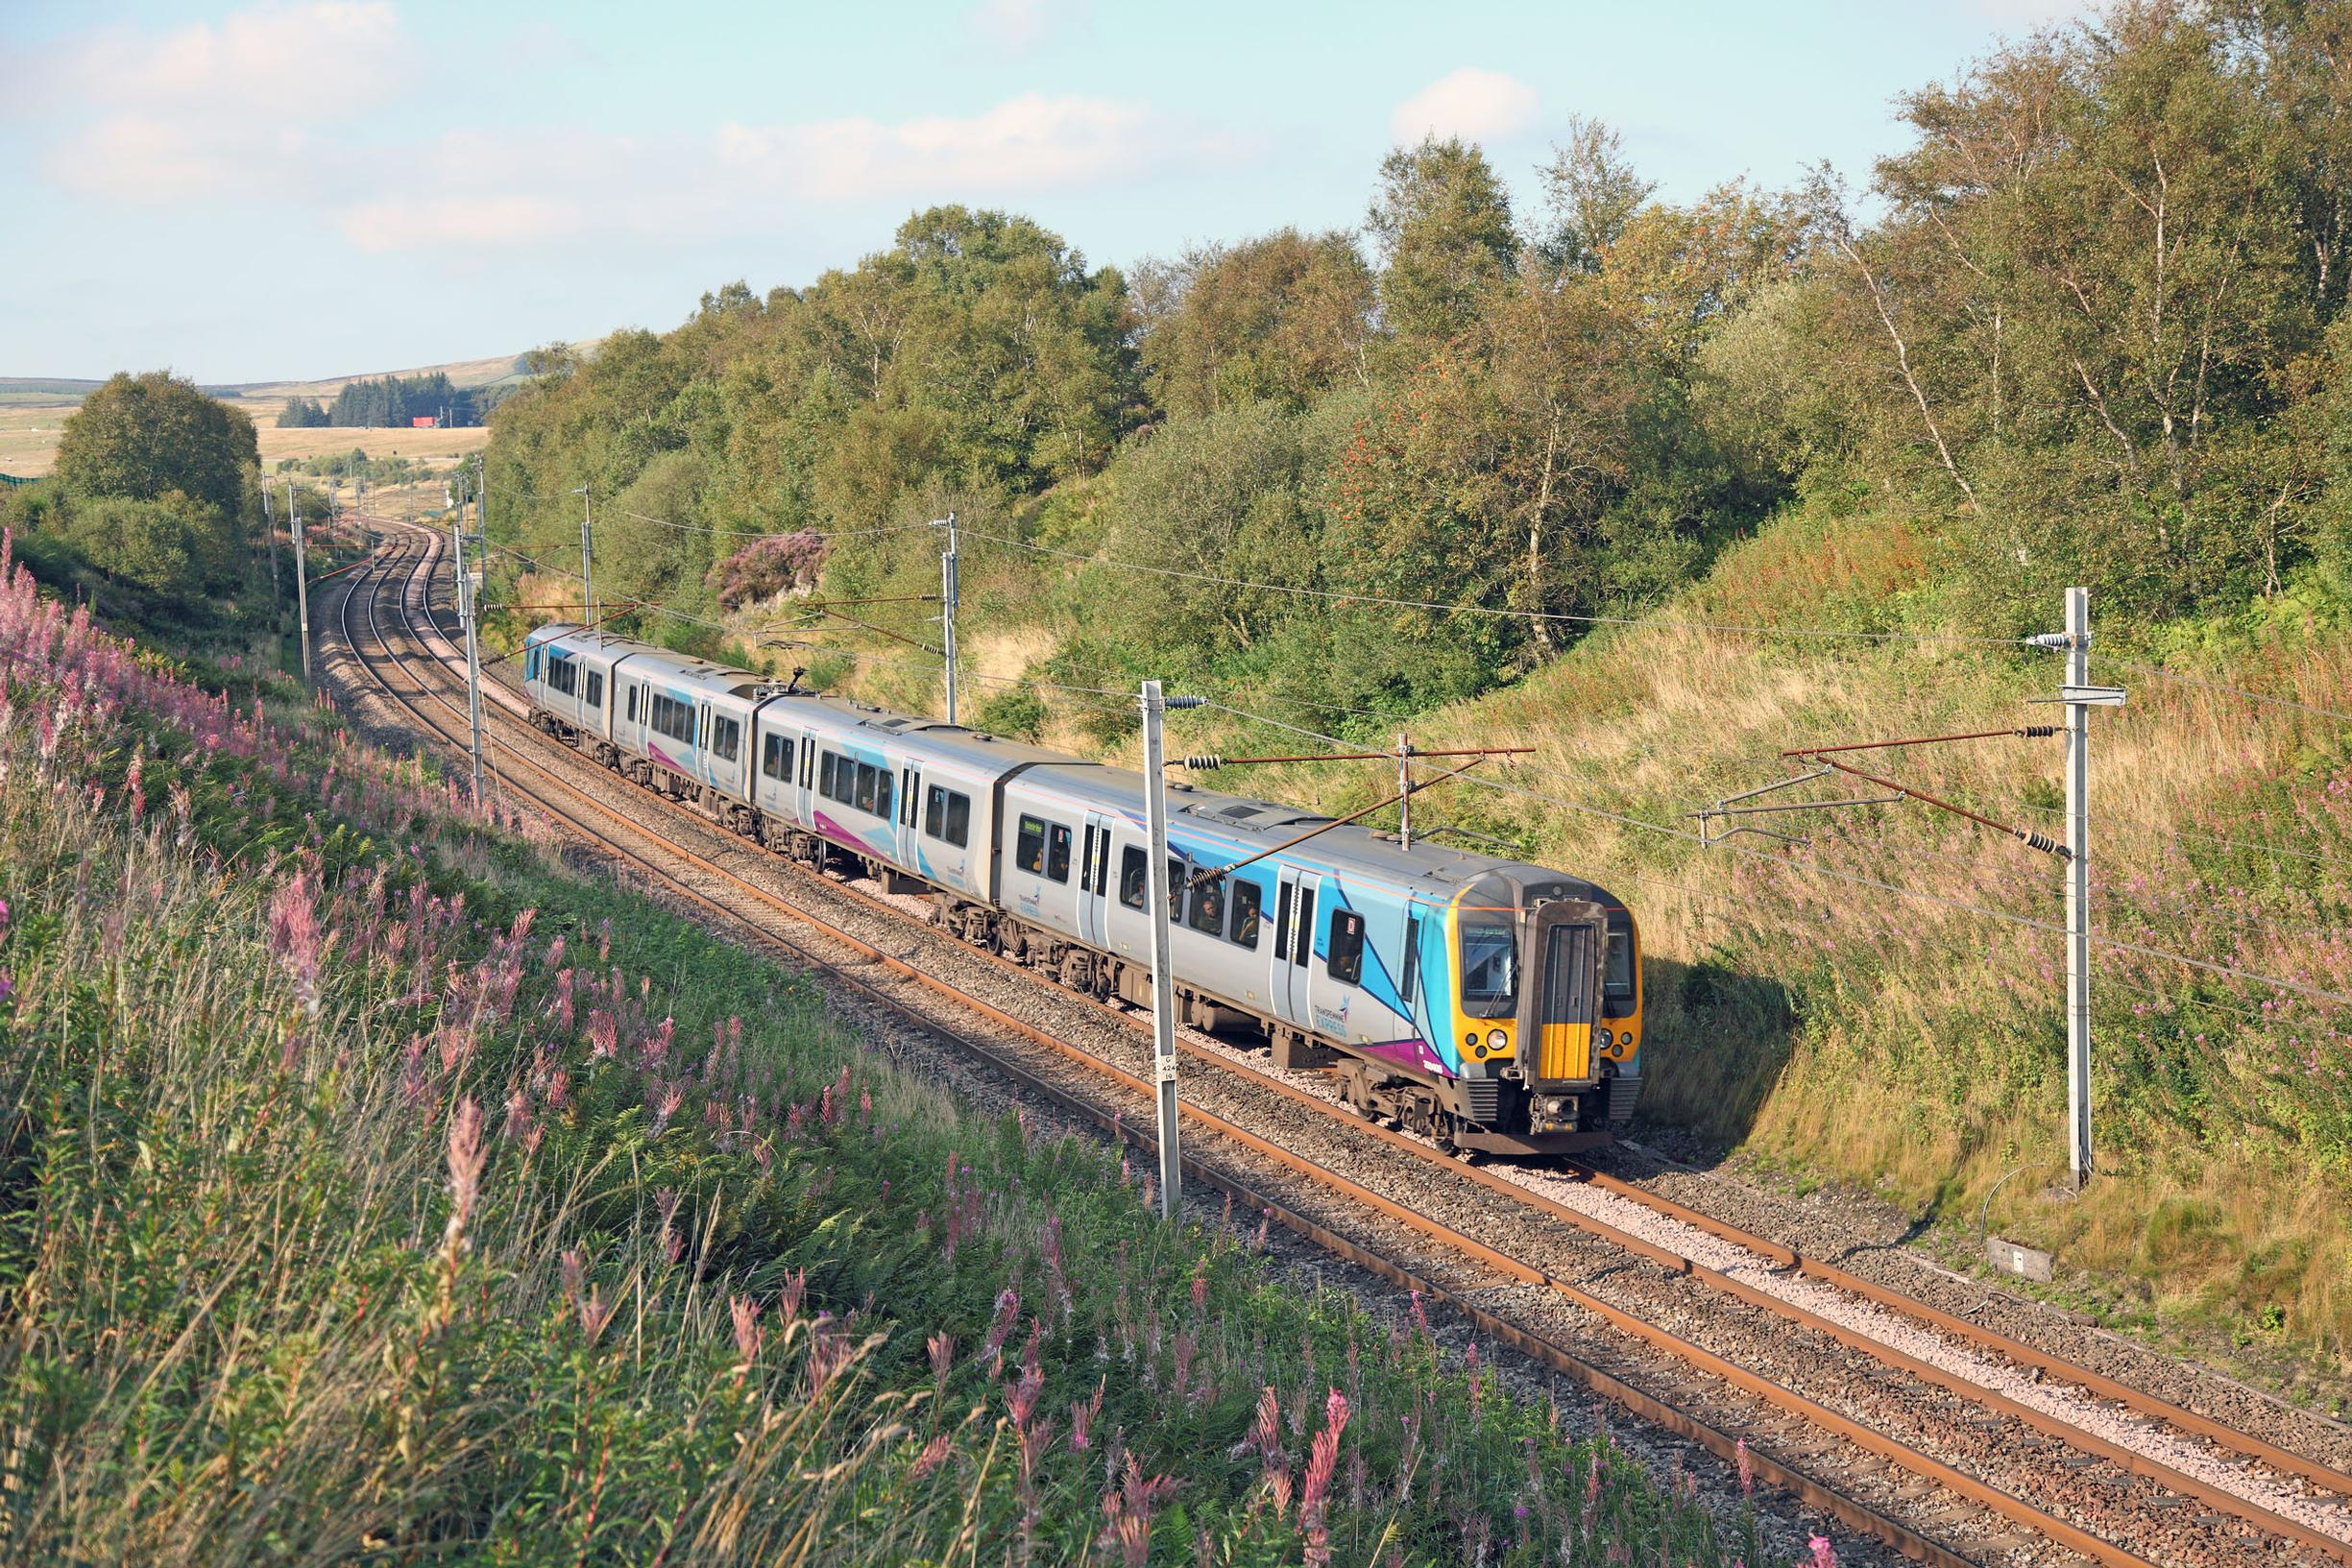 FirstGroup's Transpennine Express franchise is incapable of operating adequate services to Edinburgh during the city's festival season, says Roger Davies. It's new West Coast Partnership will prove to be an ever bigger farce, he predicts